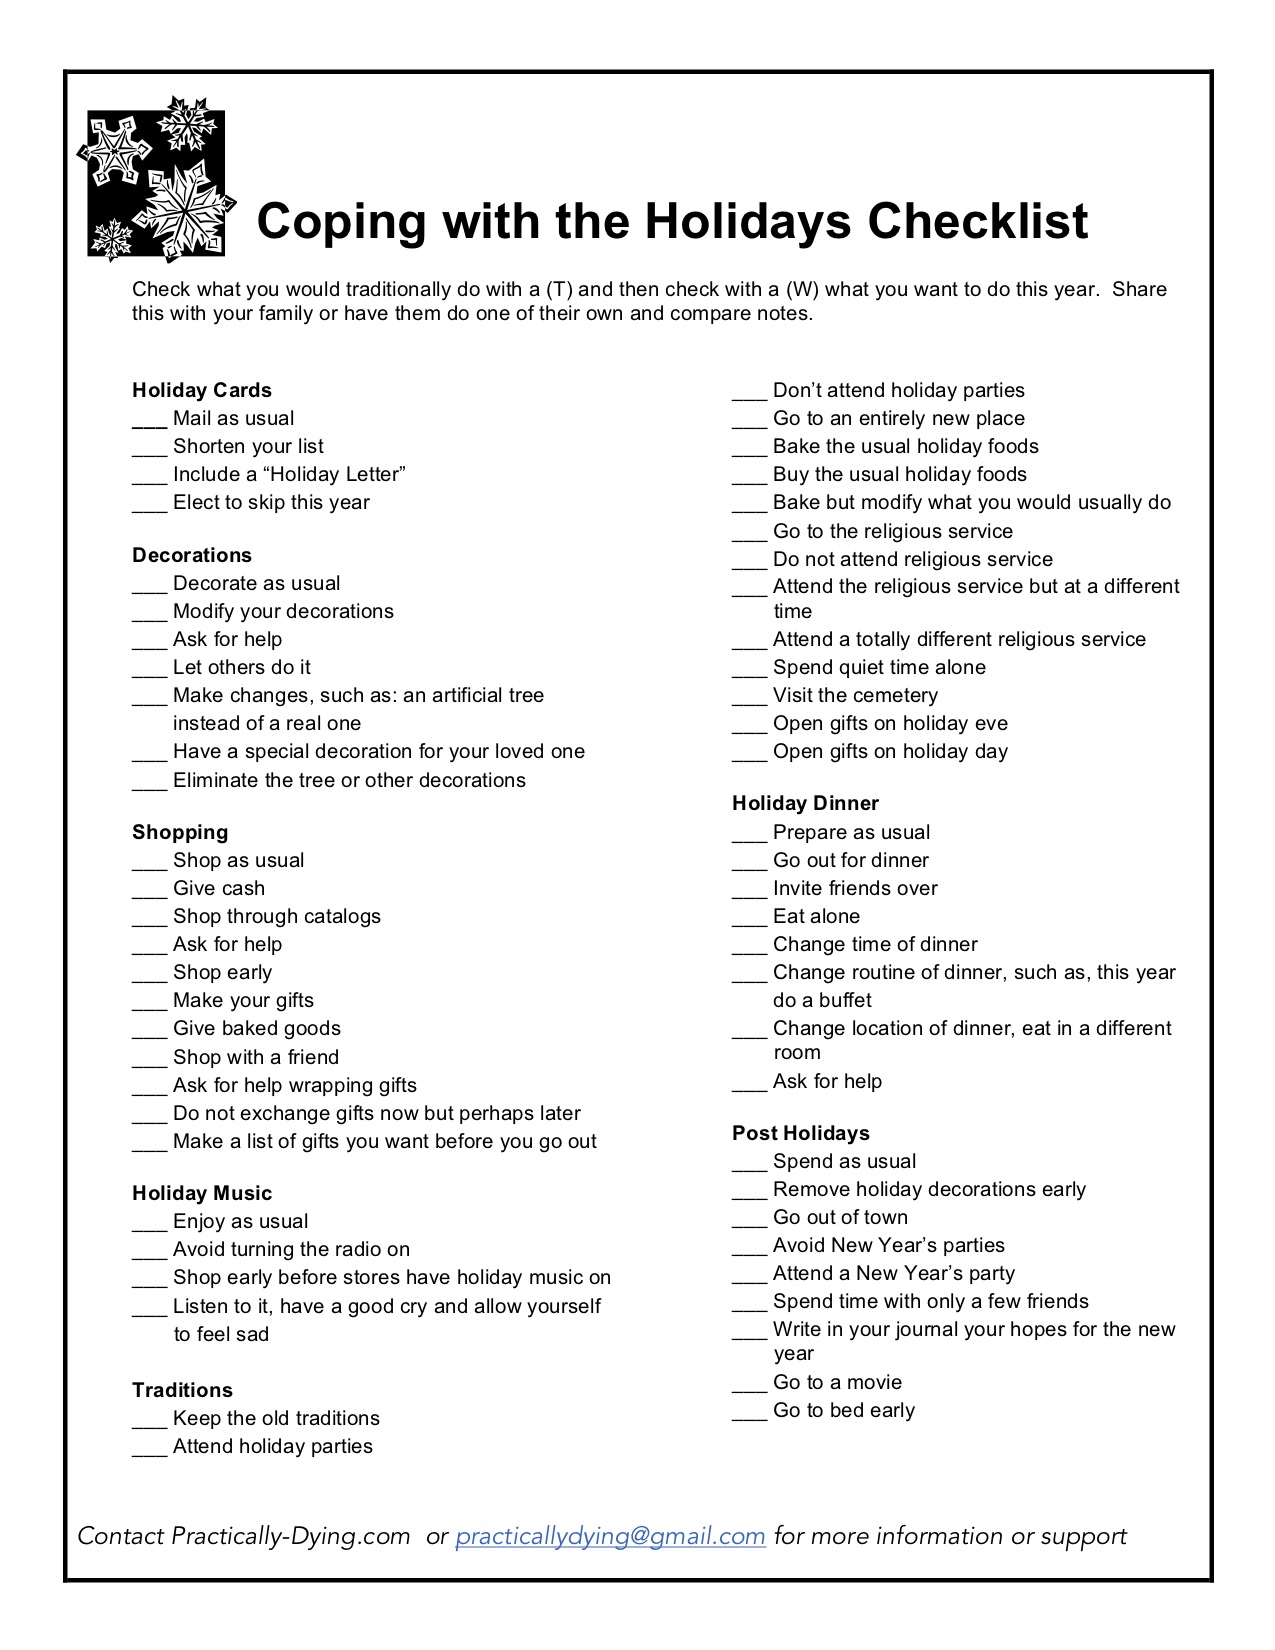 Coping With The Holidays Checklist